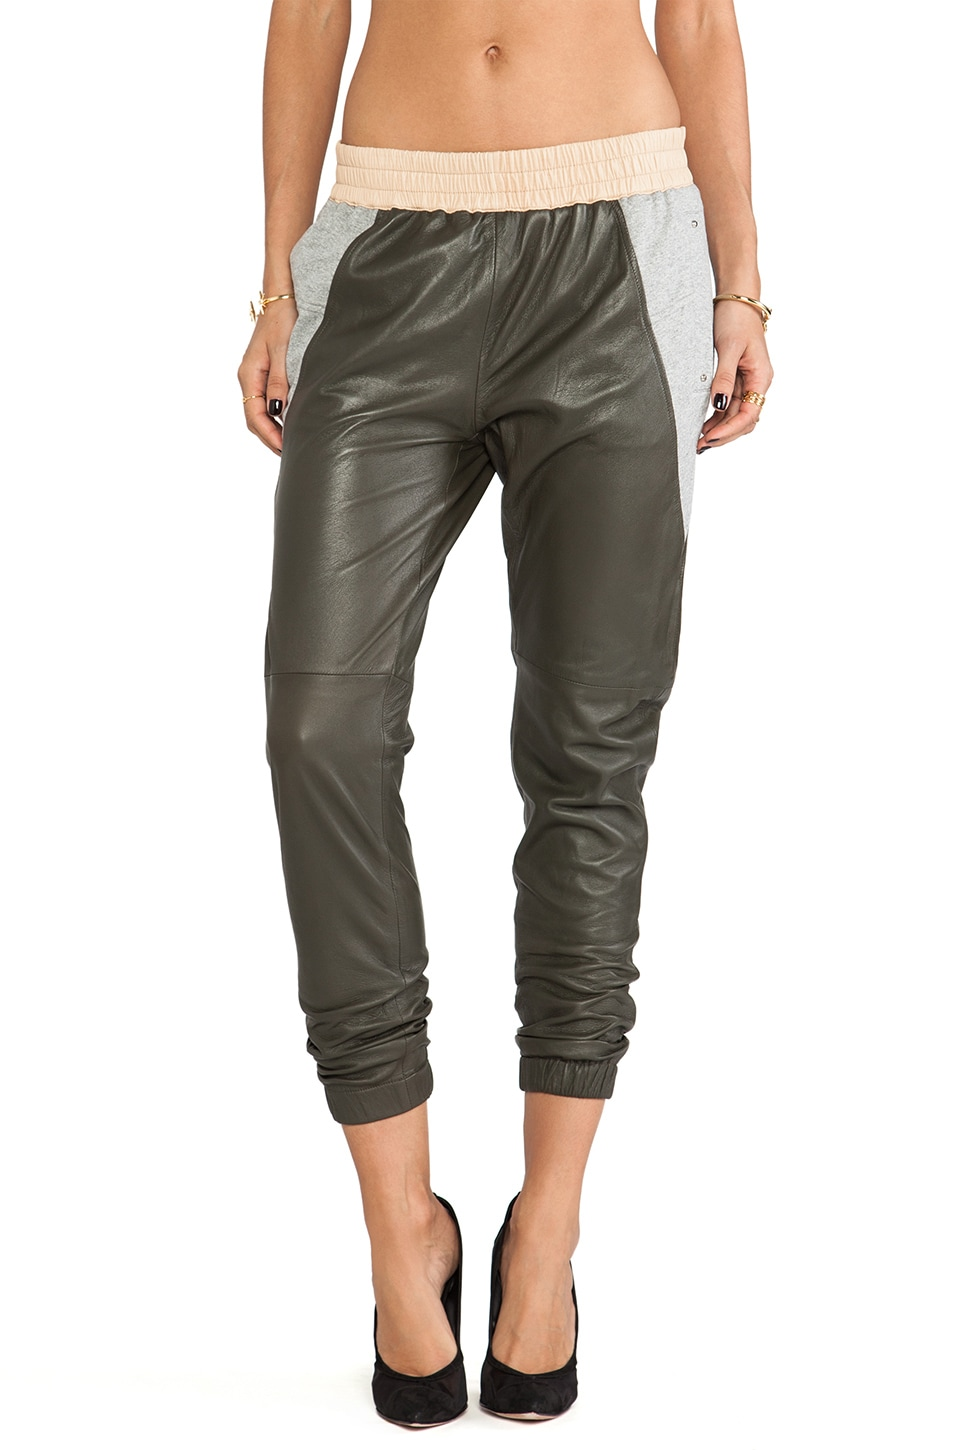 BROGDEN Slouch Pants in Army